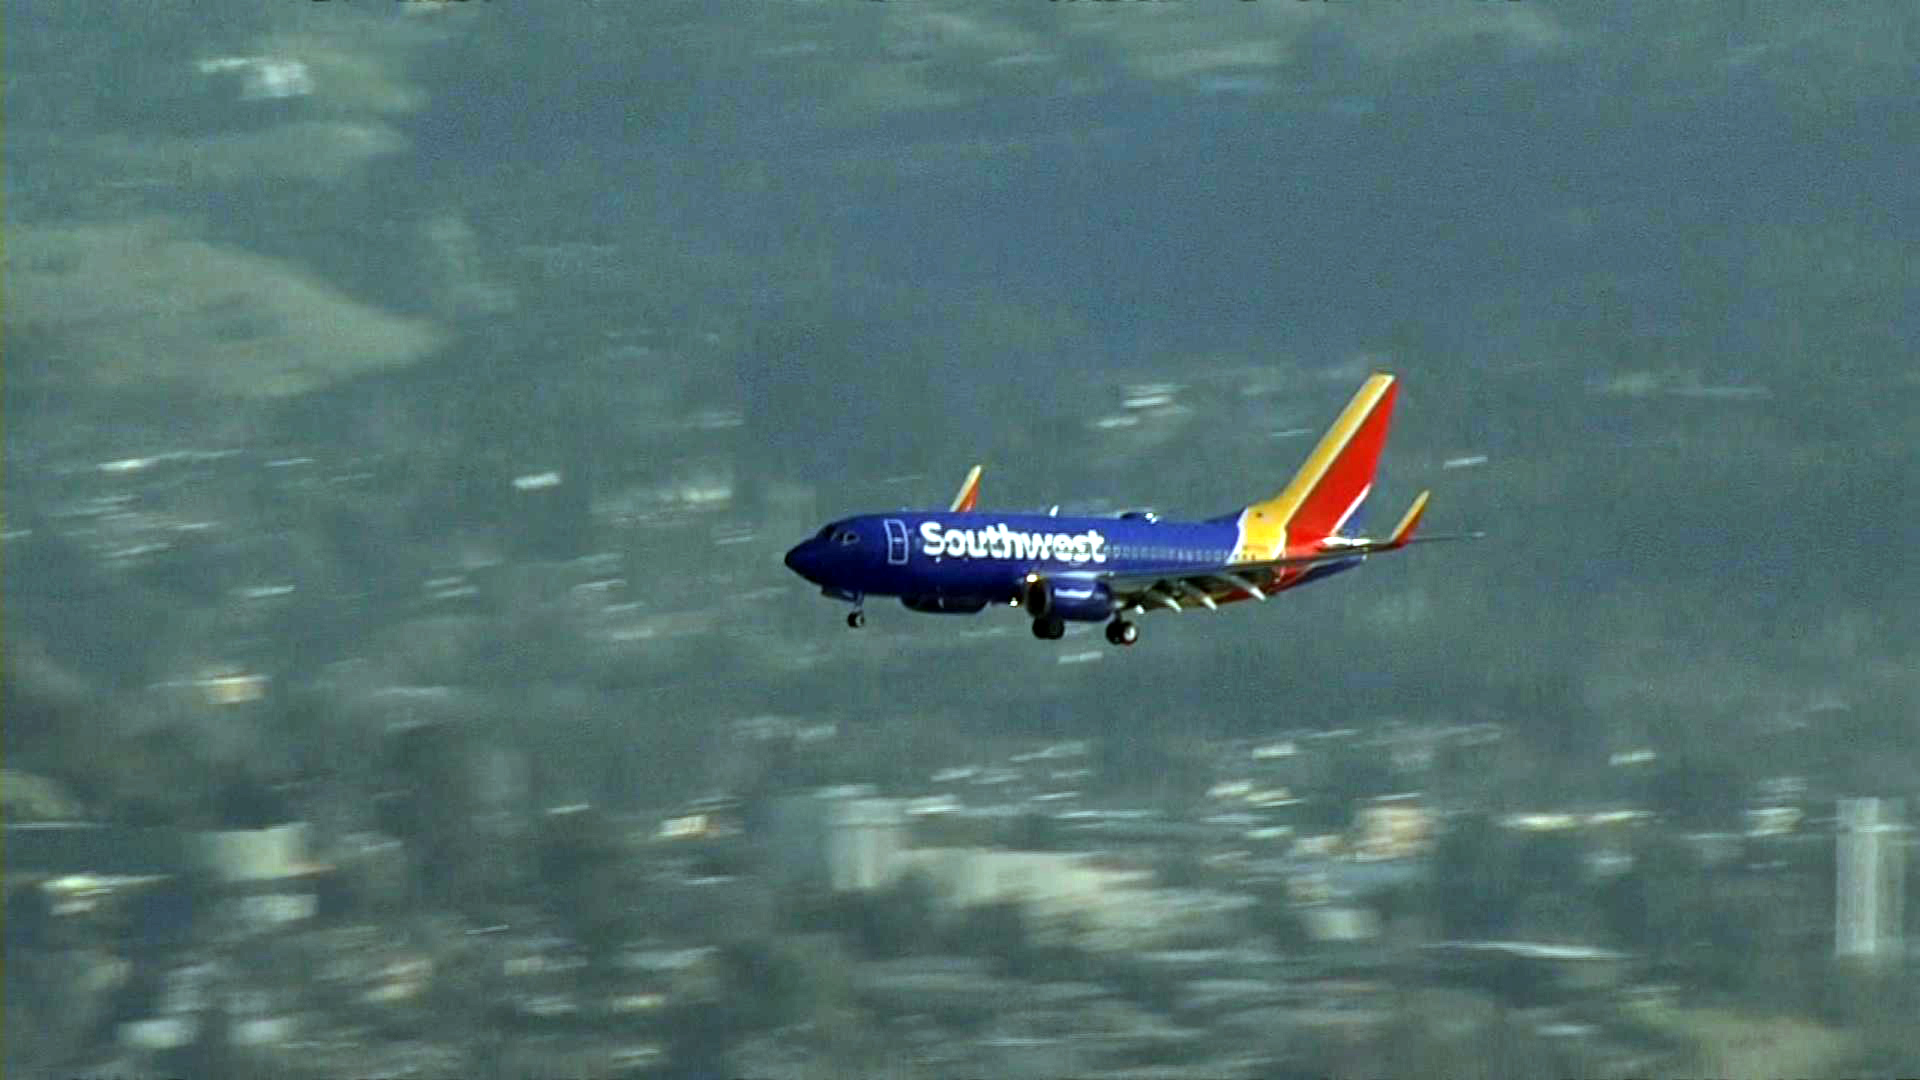 A Southwest flight that left from Oakland headed to Chicago experienced some maintenance issues, the airlines stated, before attempting an emergency landing, Wednesday, Dec. 23, 2015.